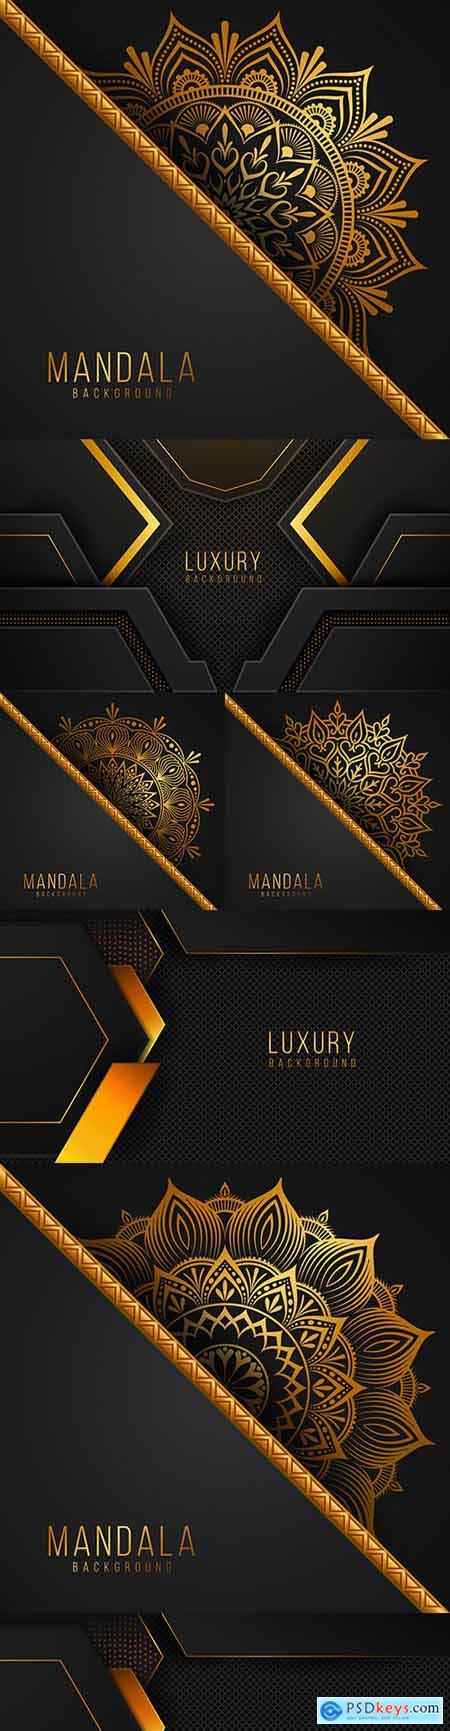 Luxurious mandala background with golden floral pattern